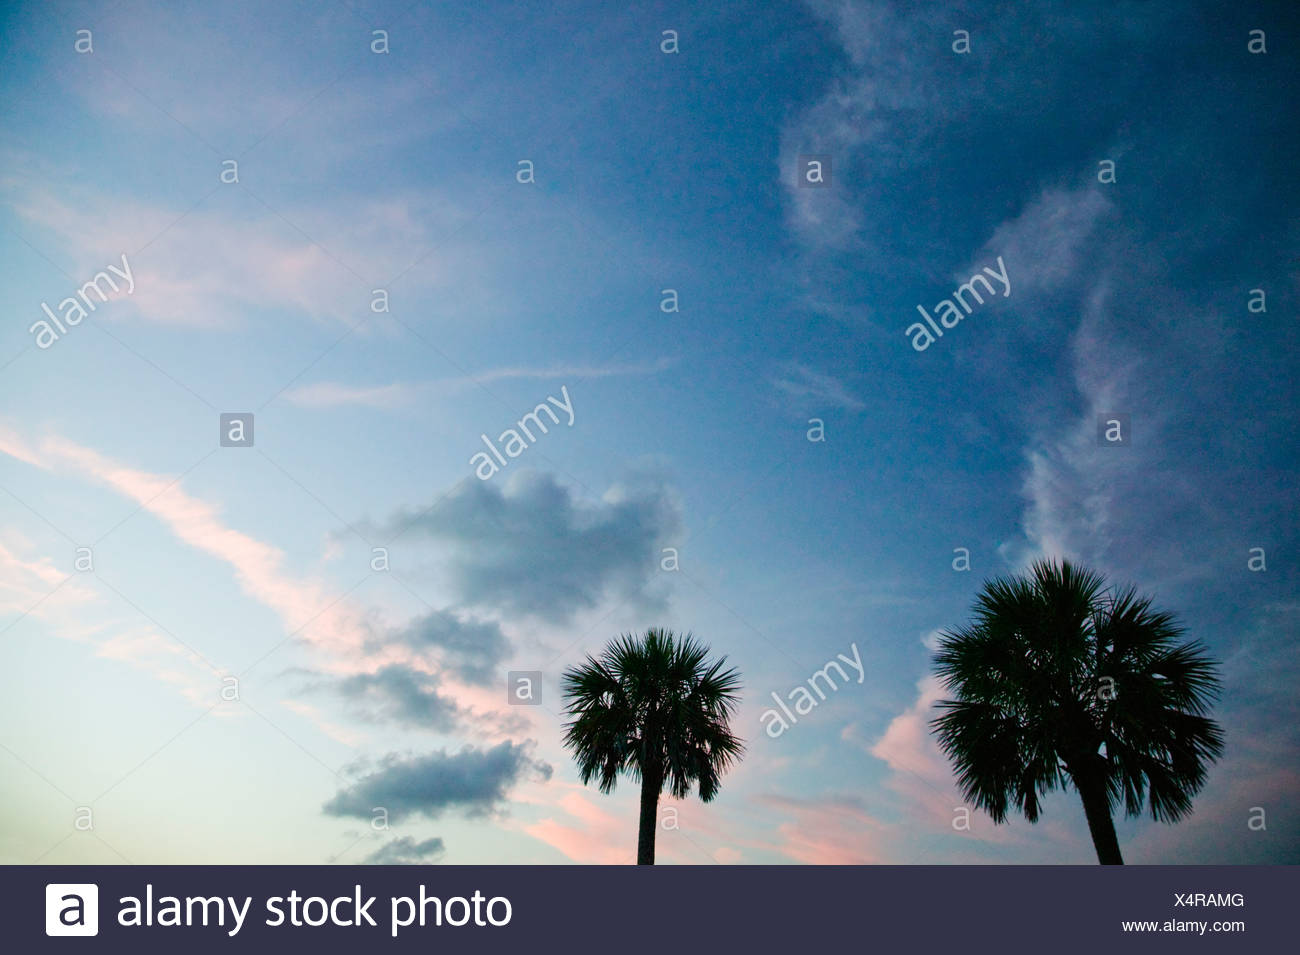 North America, USA, South Carolina, Silhouette of trees at dusk in park - Stock Image